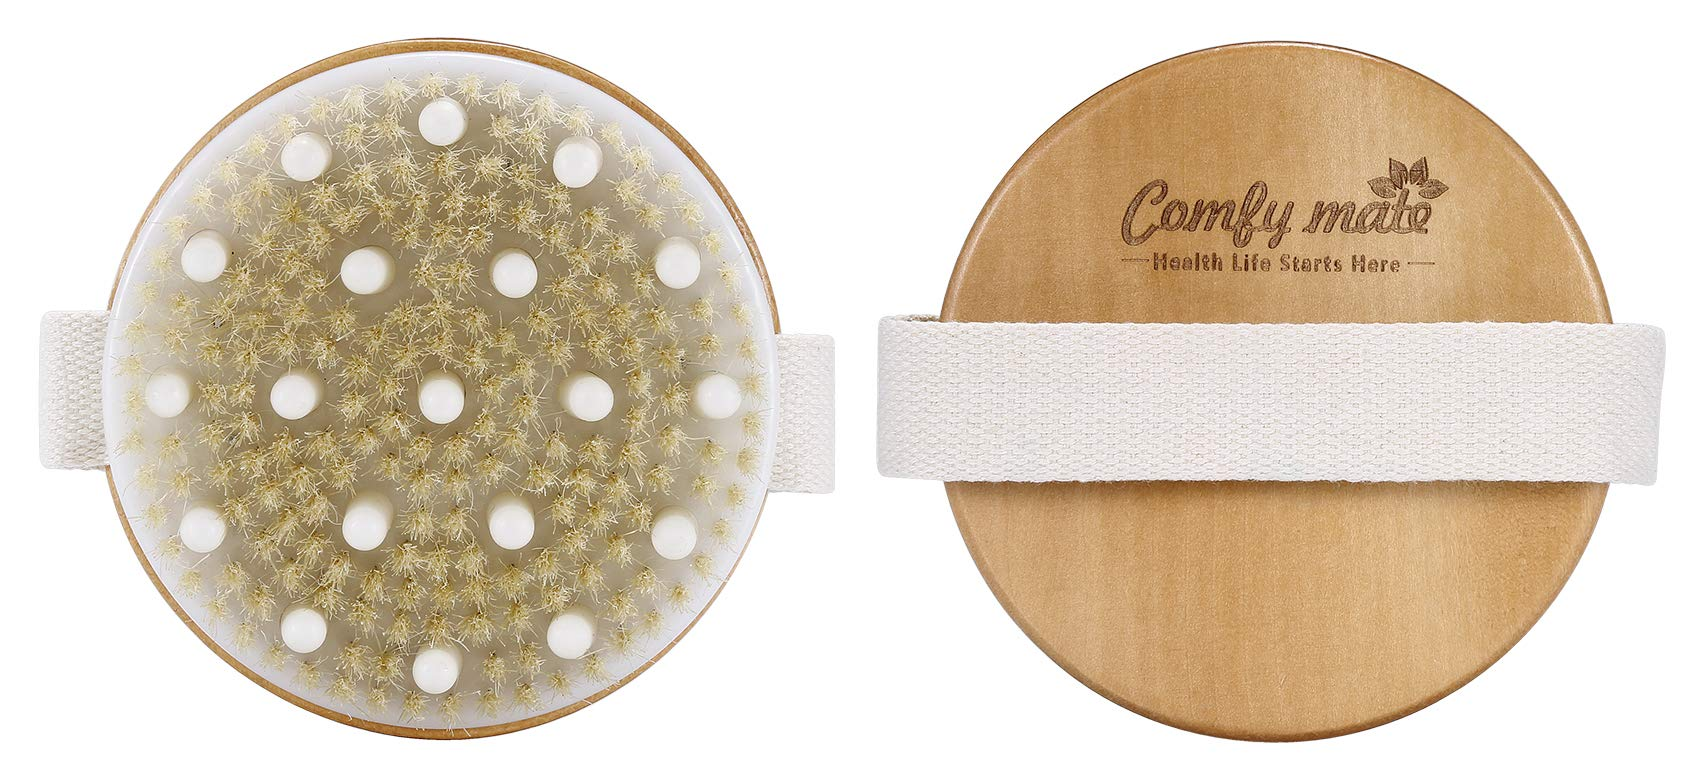 Dry Brushing Body Brush - Cellulite Massager Best for Get Rid of Cellulite, Glowing Skin, Dry Skin Exfoliating, Improves Lymphatic & Stimulates Blood Functions, with Massage Nodes & Natural Bristles